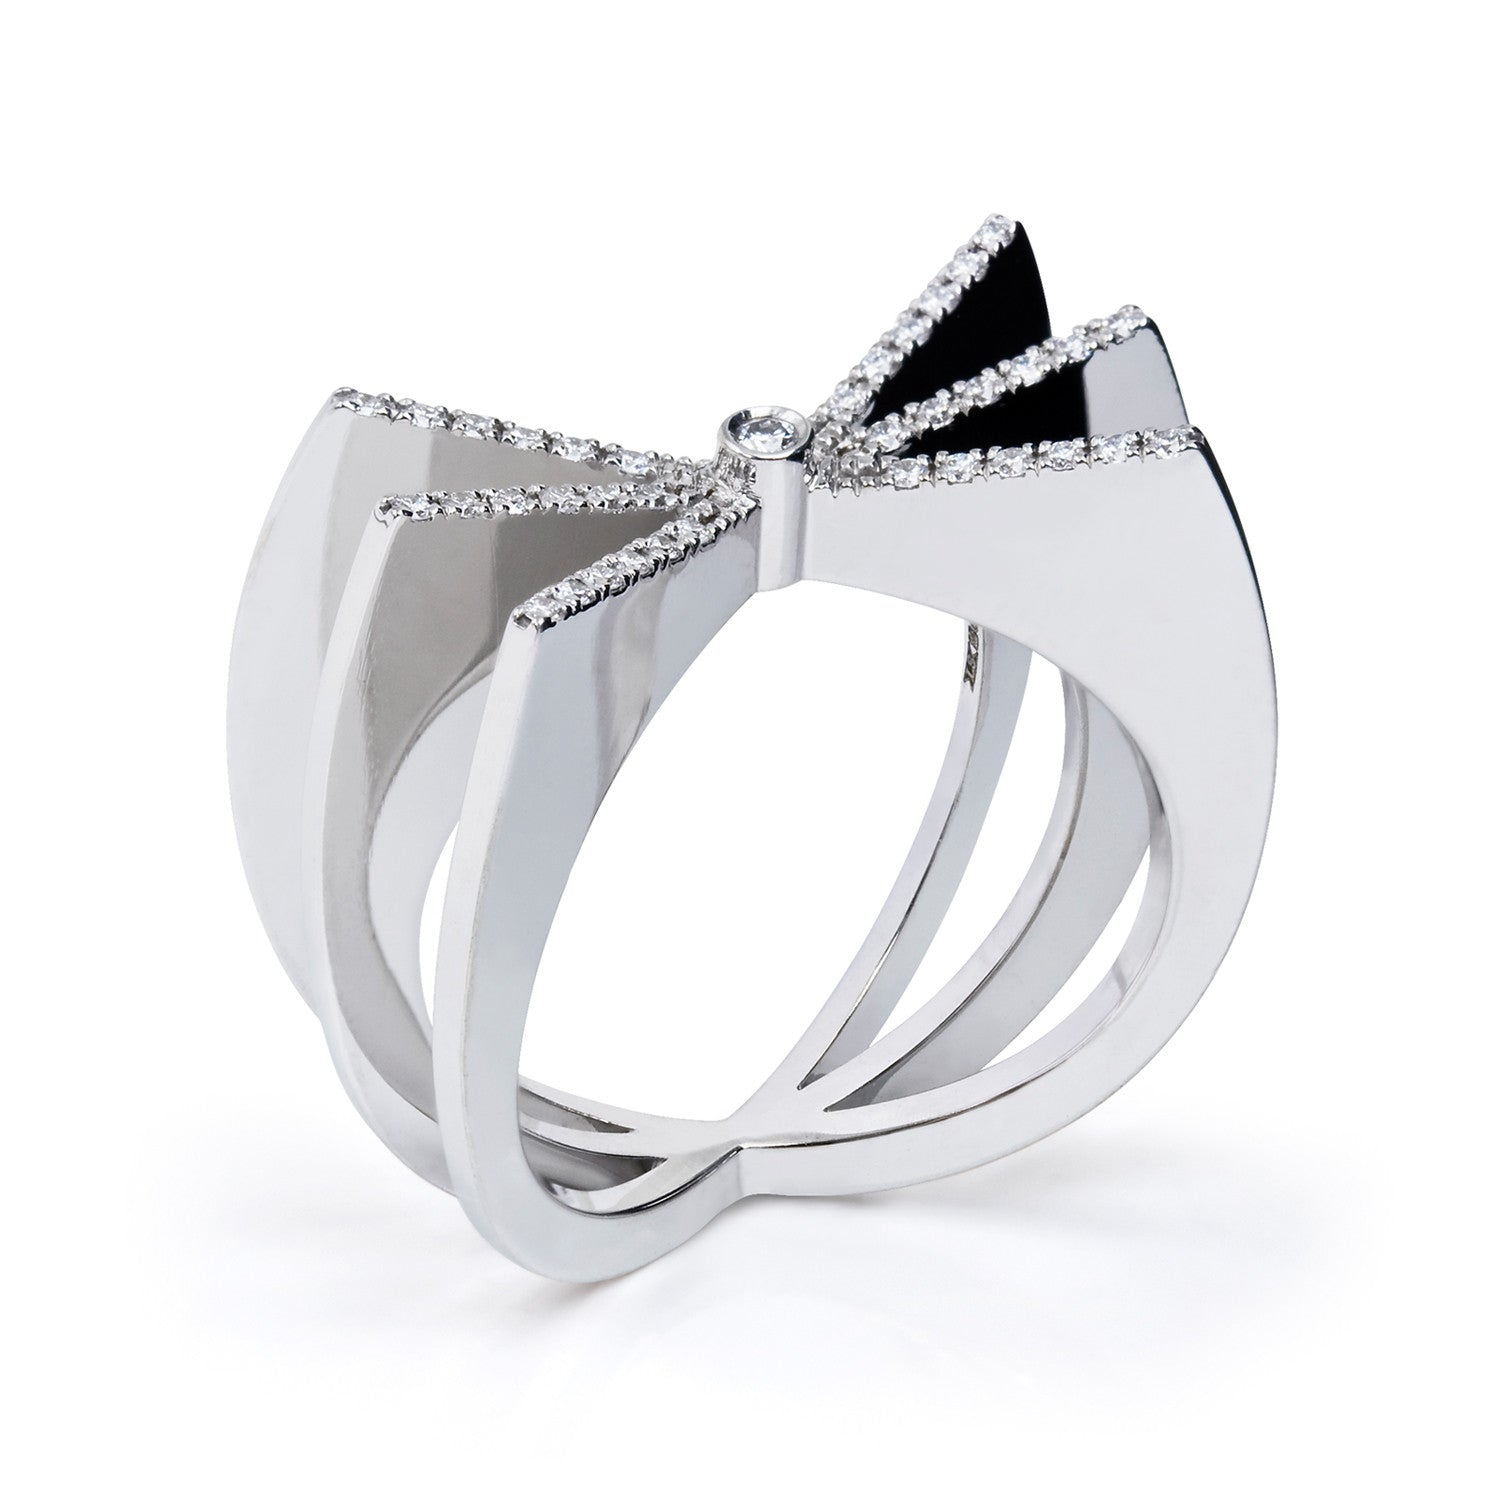 Bespoke Jewellery- Bow Diamond Ring in 18ct white gold and diamonds- Arabel Lebrusan